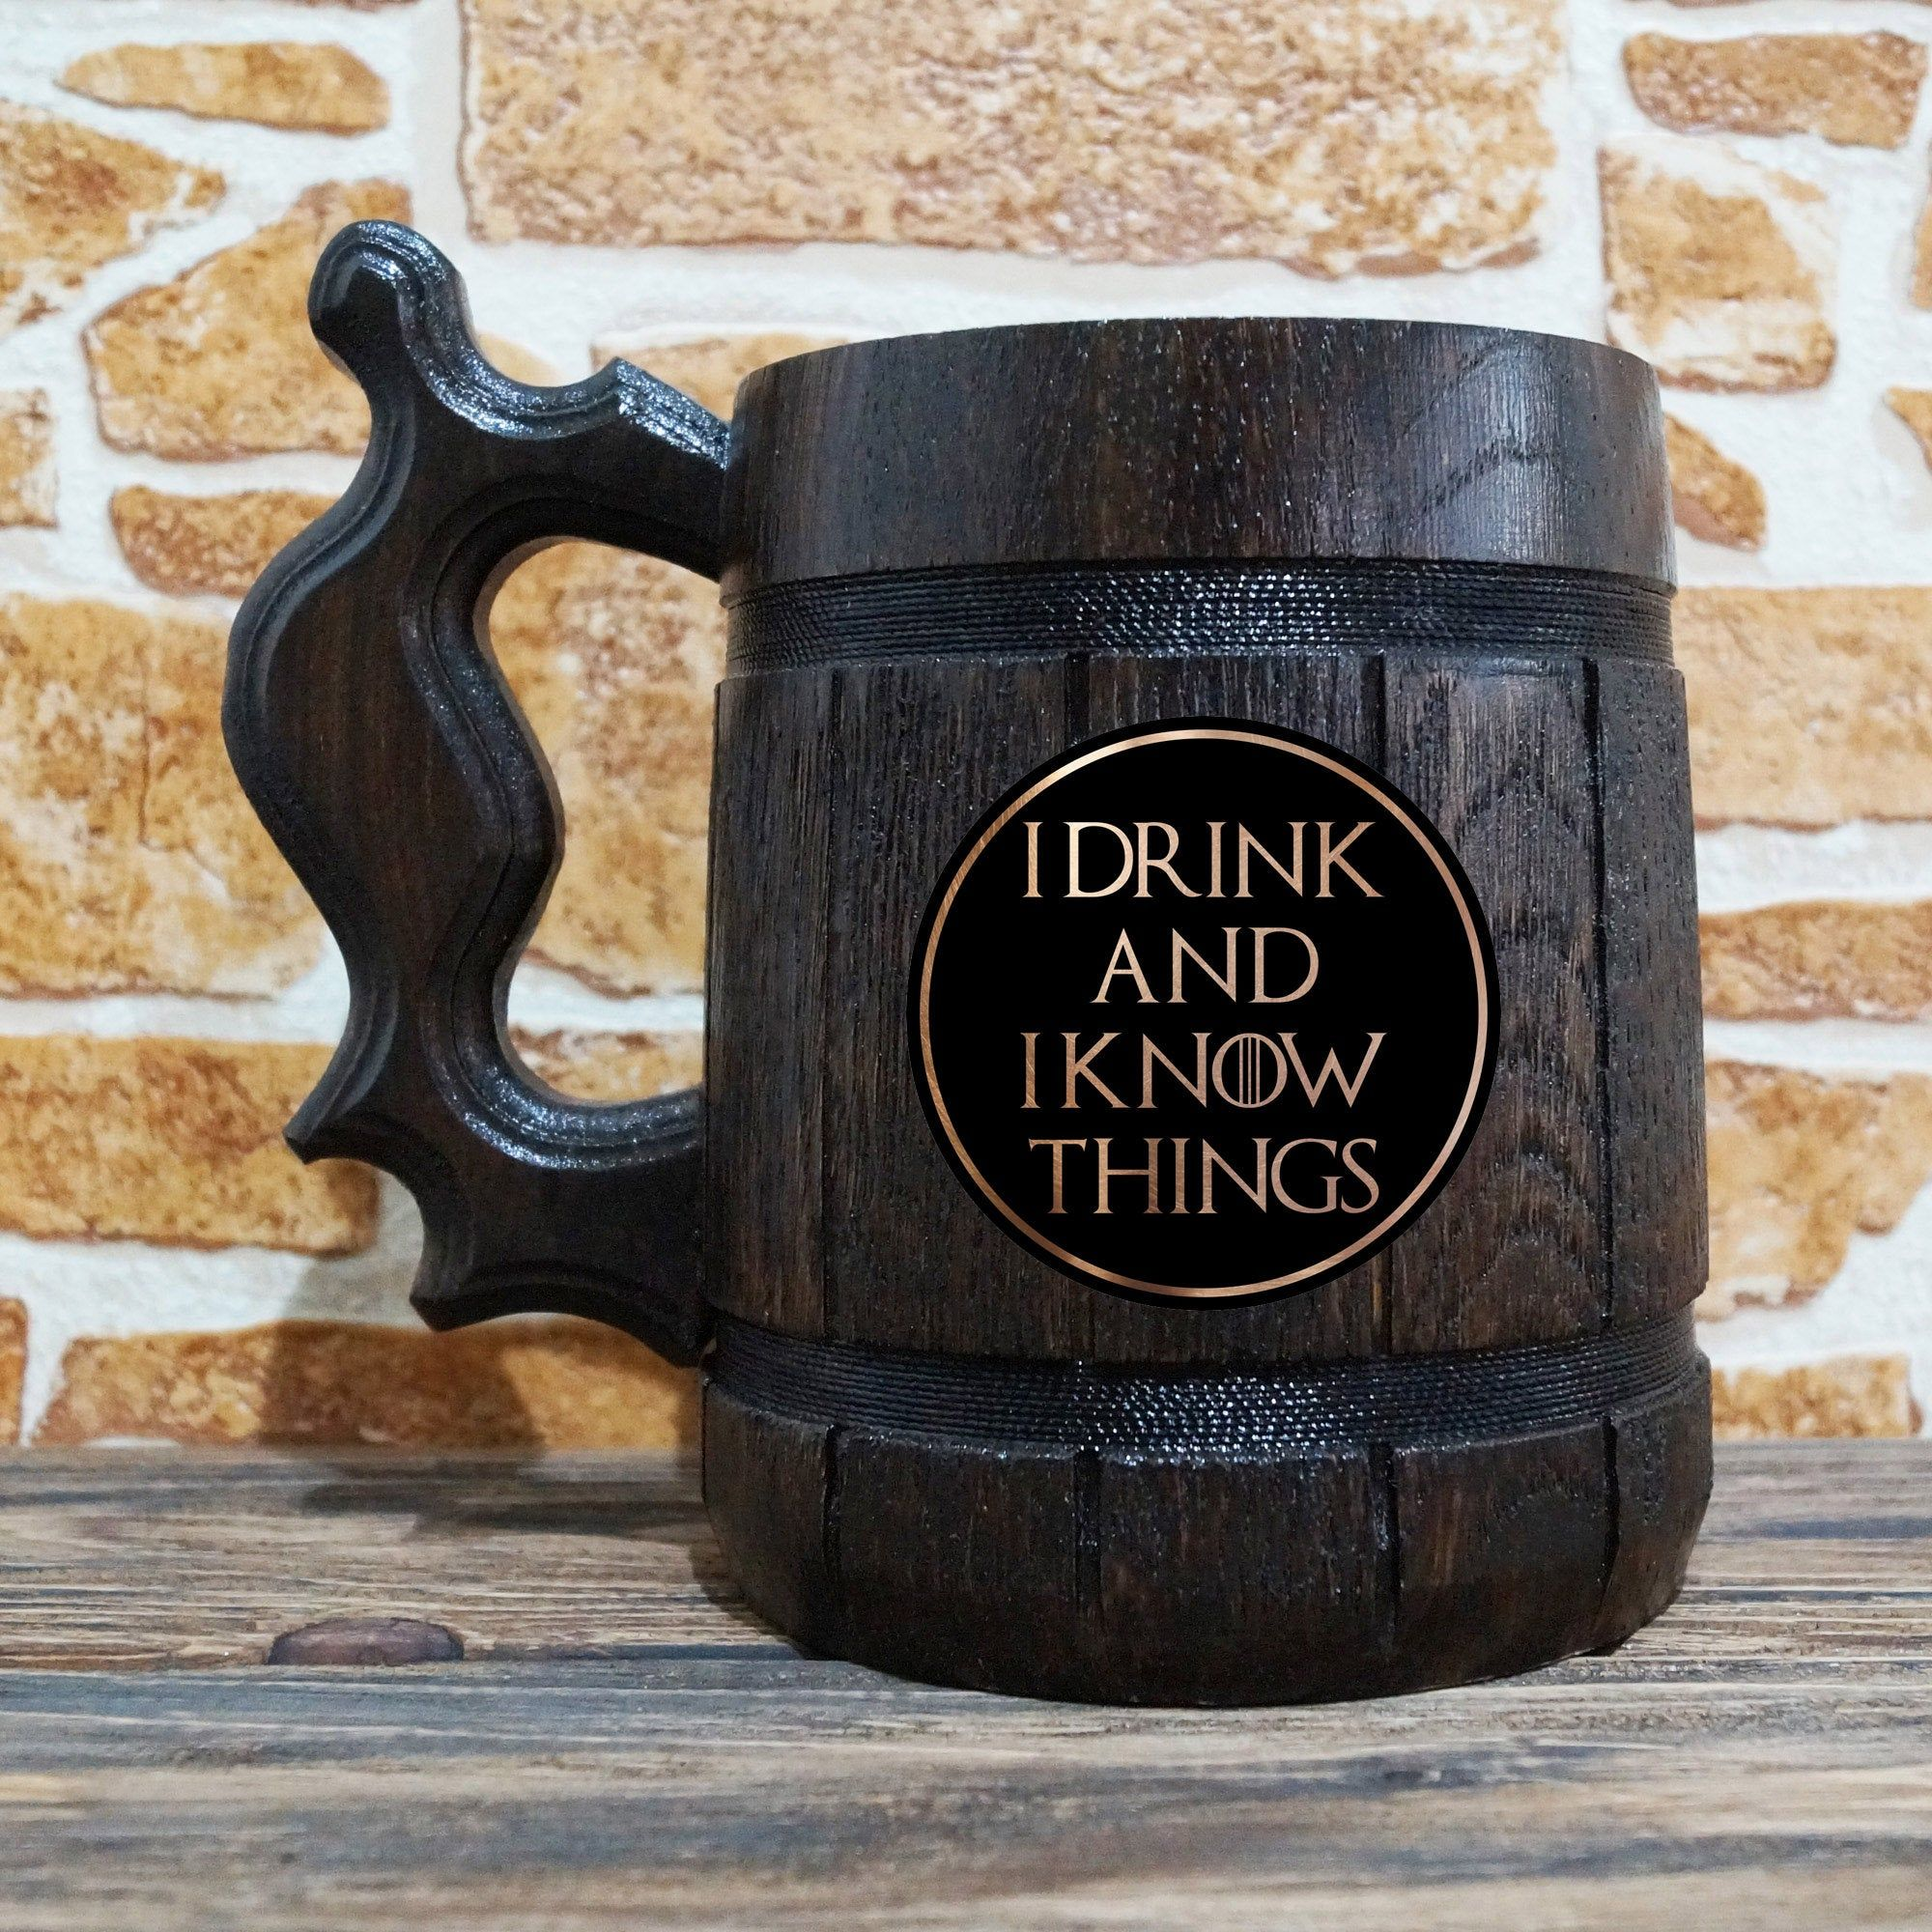 I Drink And I Know Things Beer Mug, Game Of Thrones